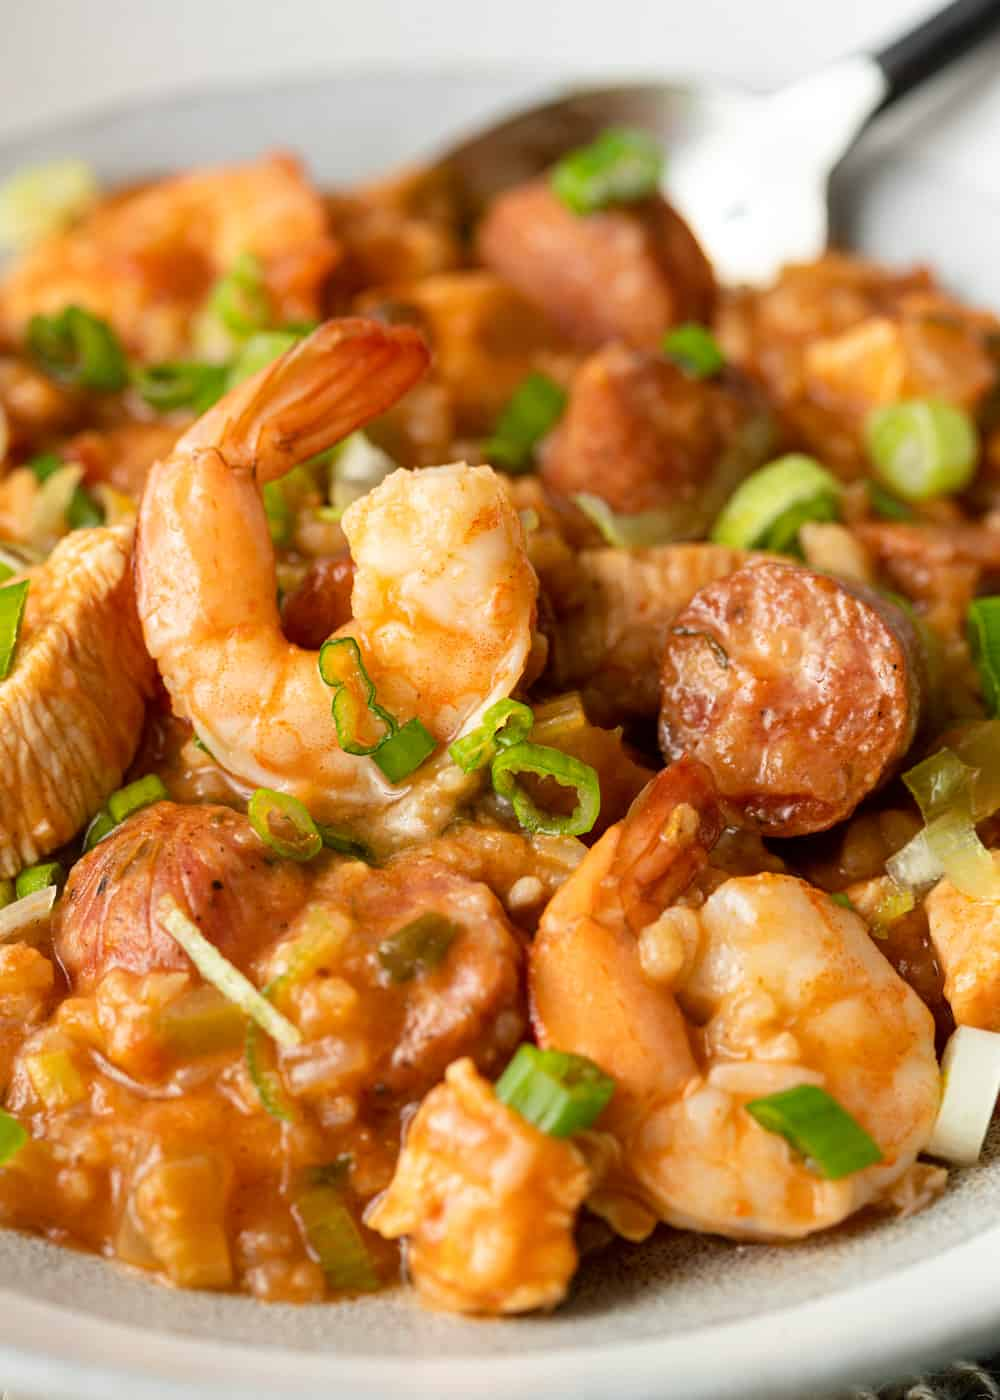 bowl of cajun jambalaya